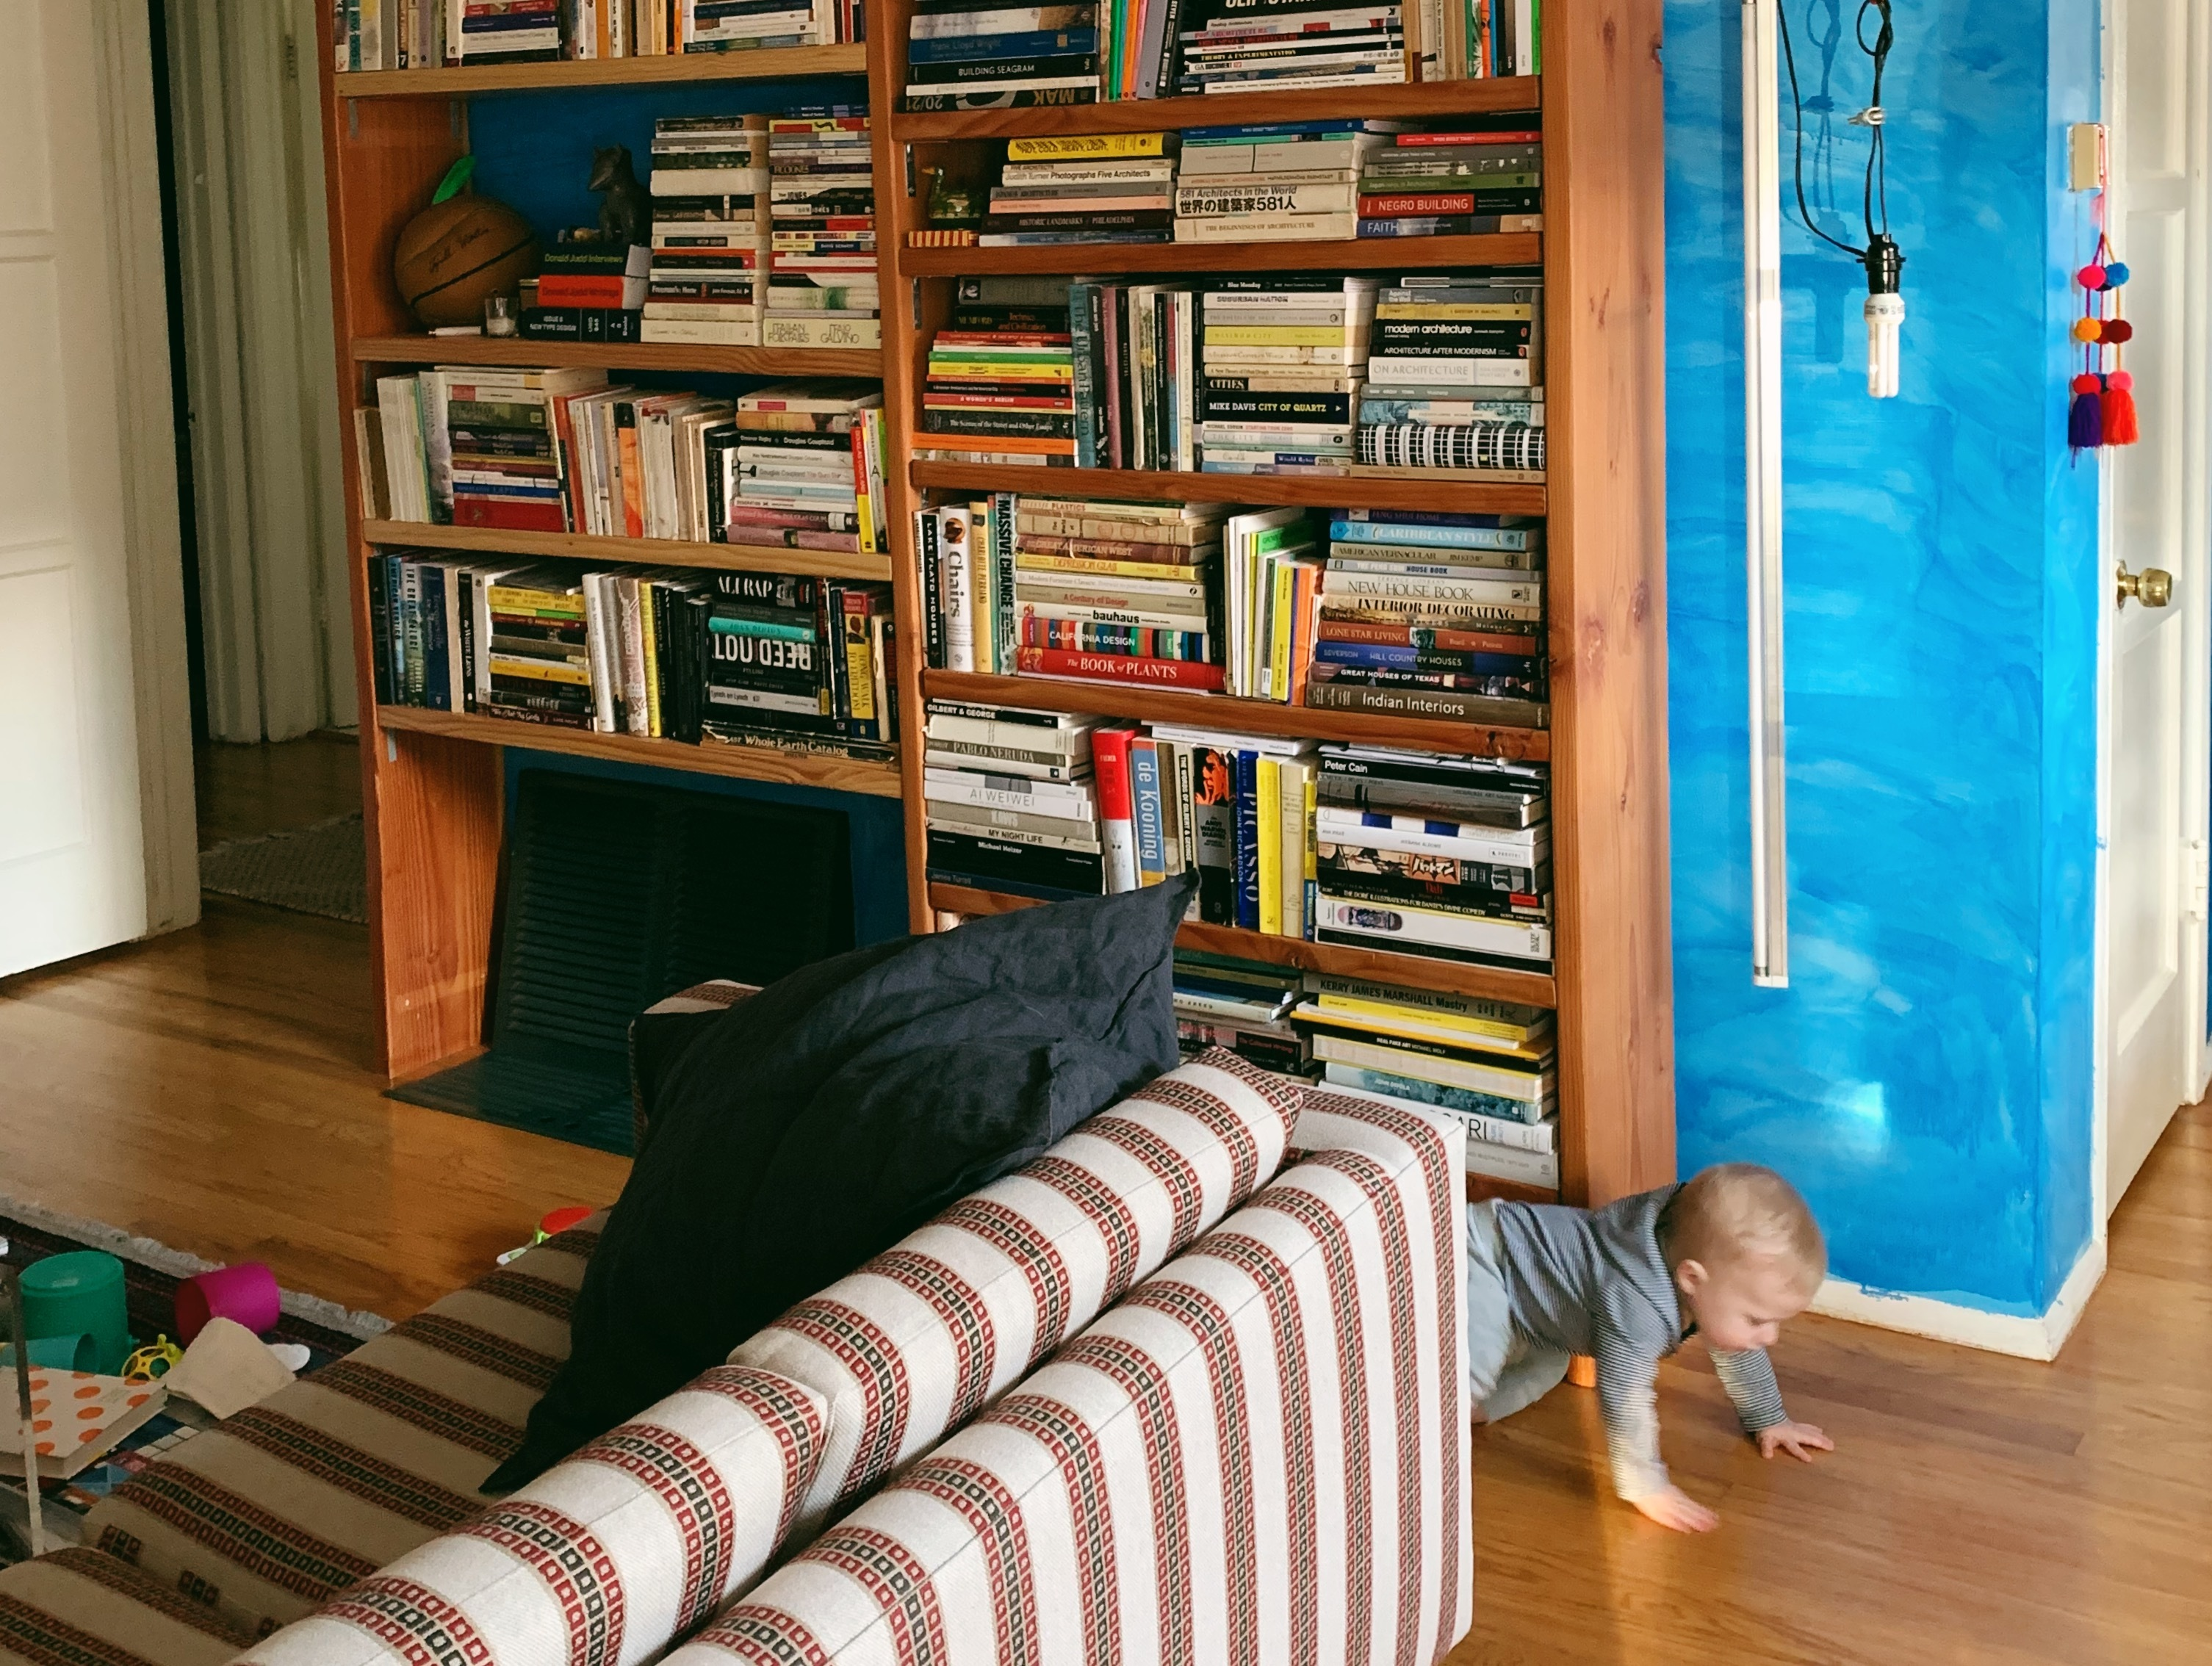 A toddler boy crawls across a wood floor. To his left is a large bookcase against a light blue-painted wall. To his right, a striped couch.